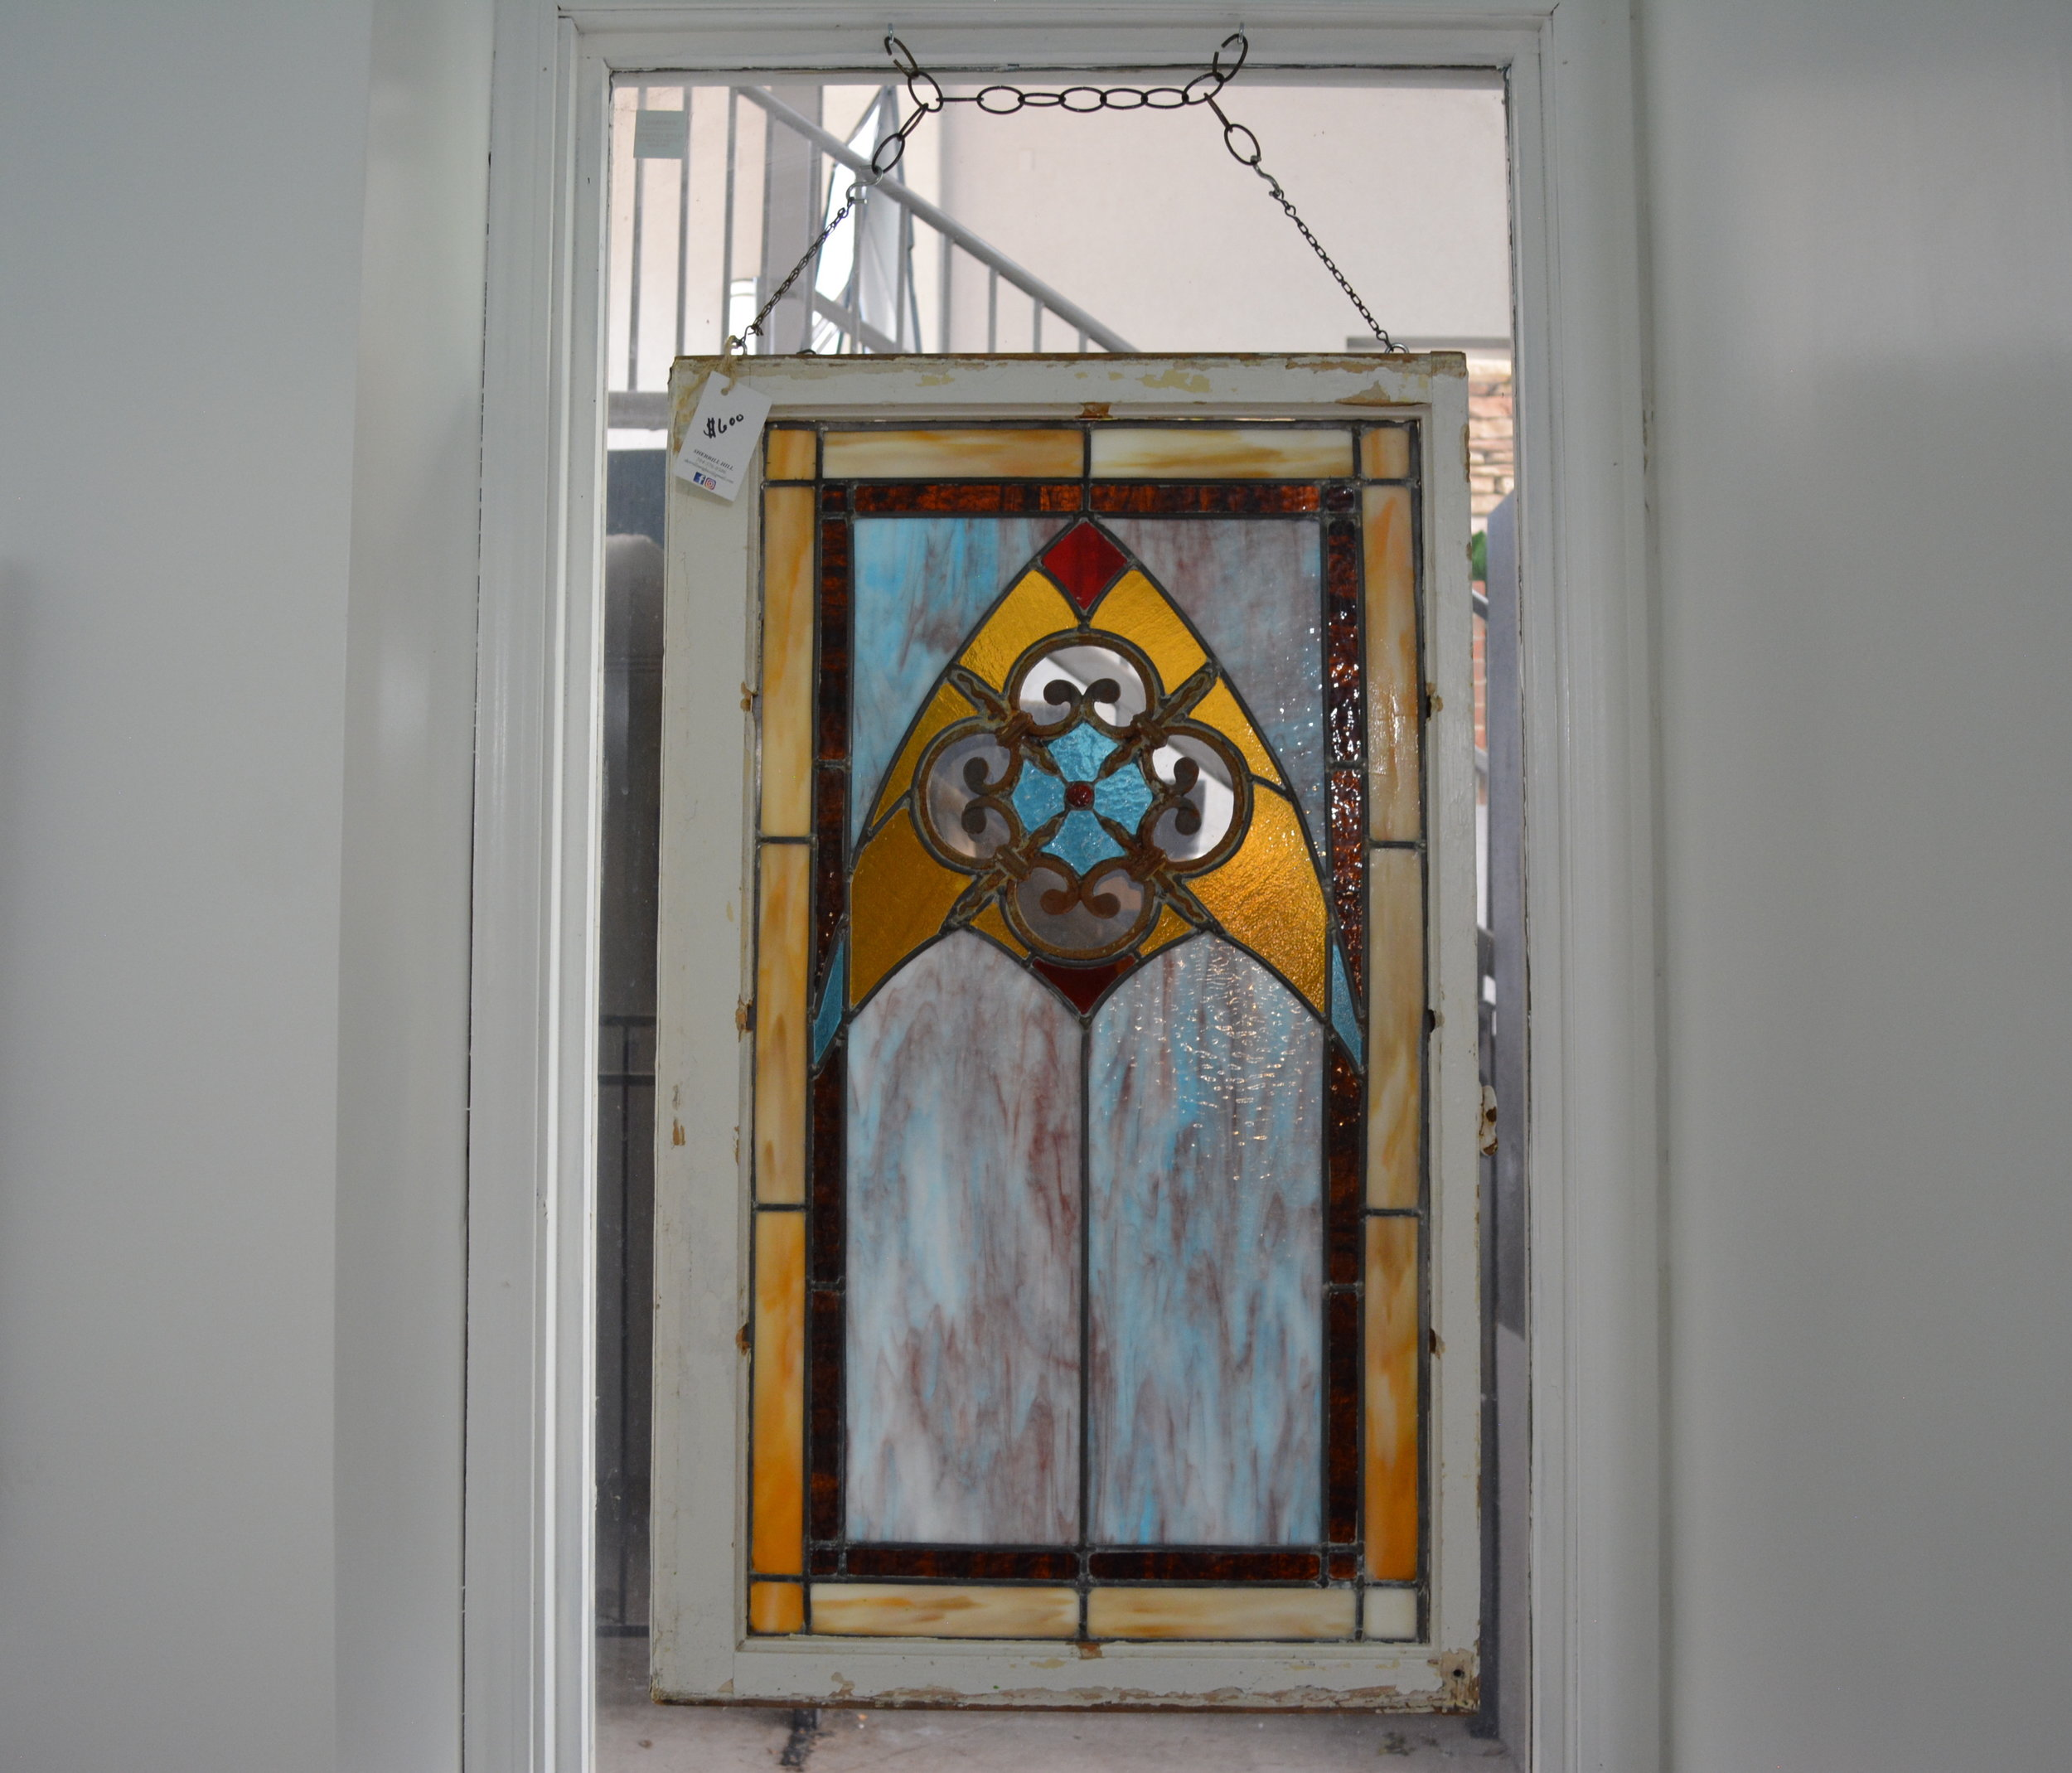 Sherrill Hill - Stained glass artist creating work to hang on your window as well as custom work in windows. Often incorporating antique found materials.